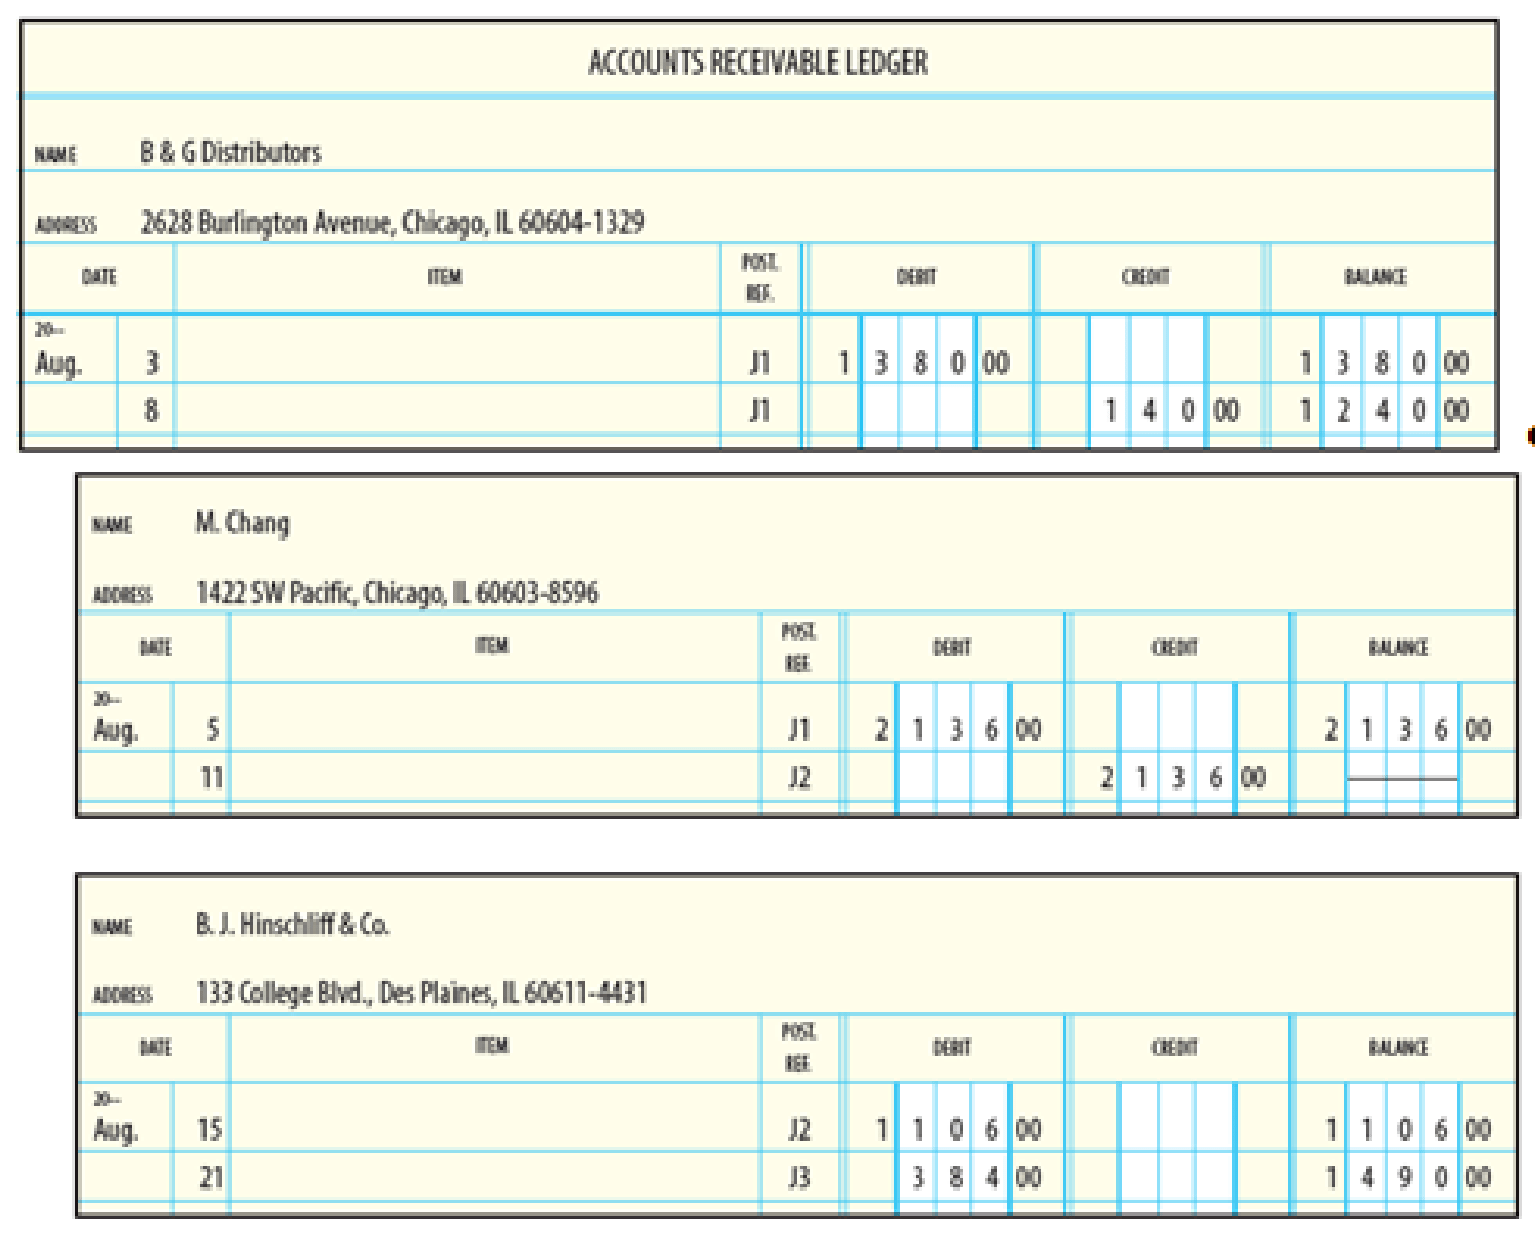 Schedule Of Accounts Receivable From The Accounts